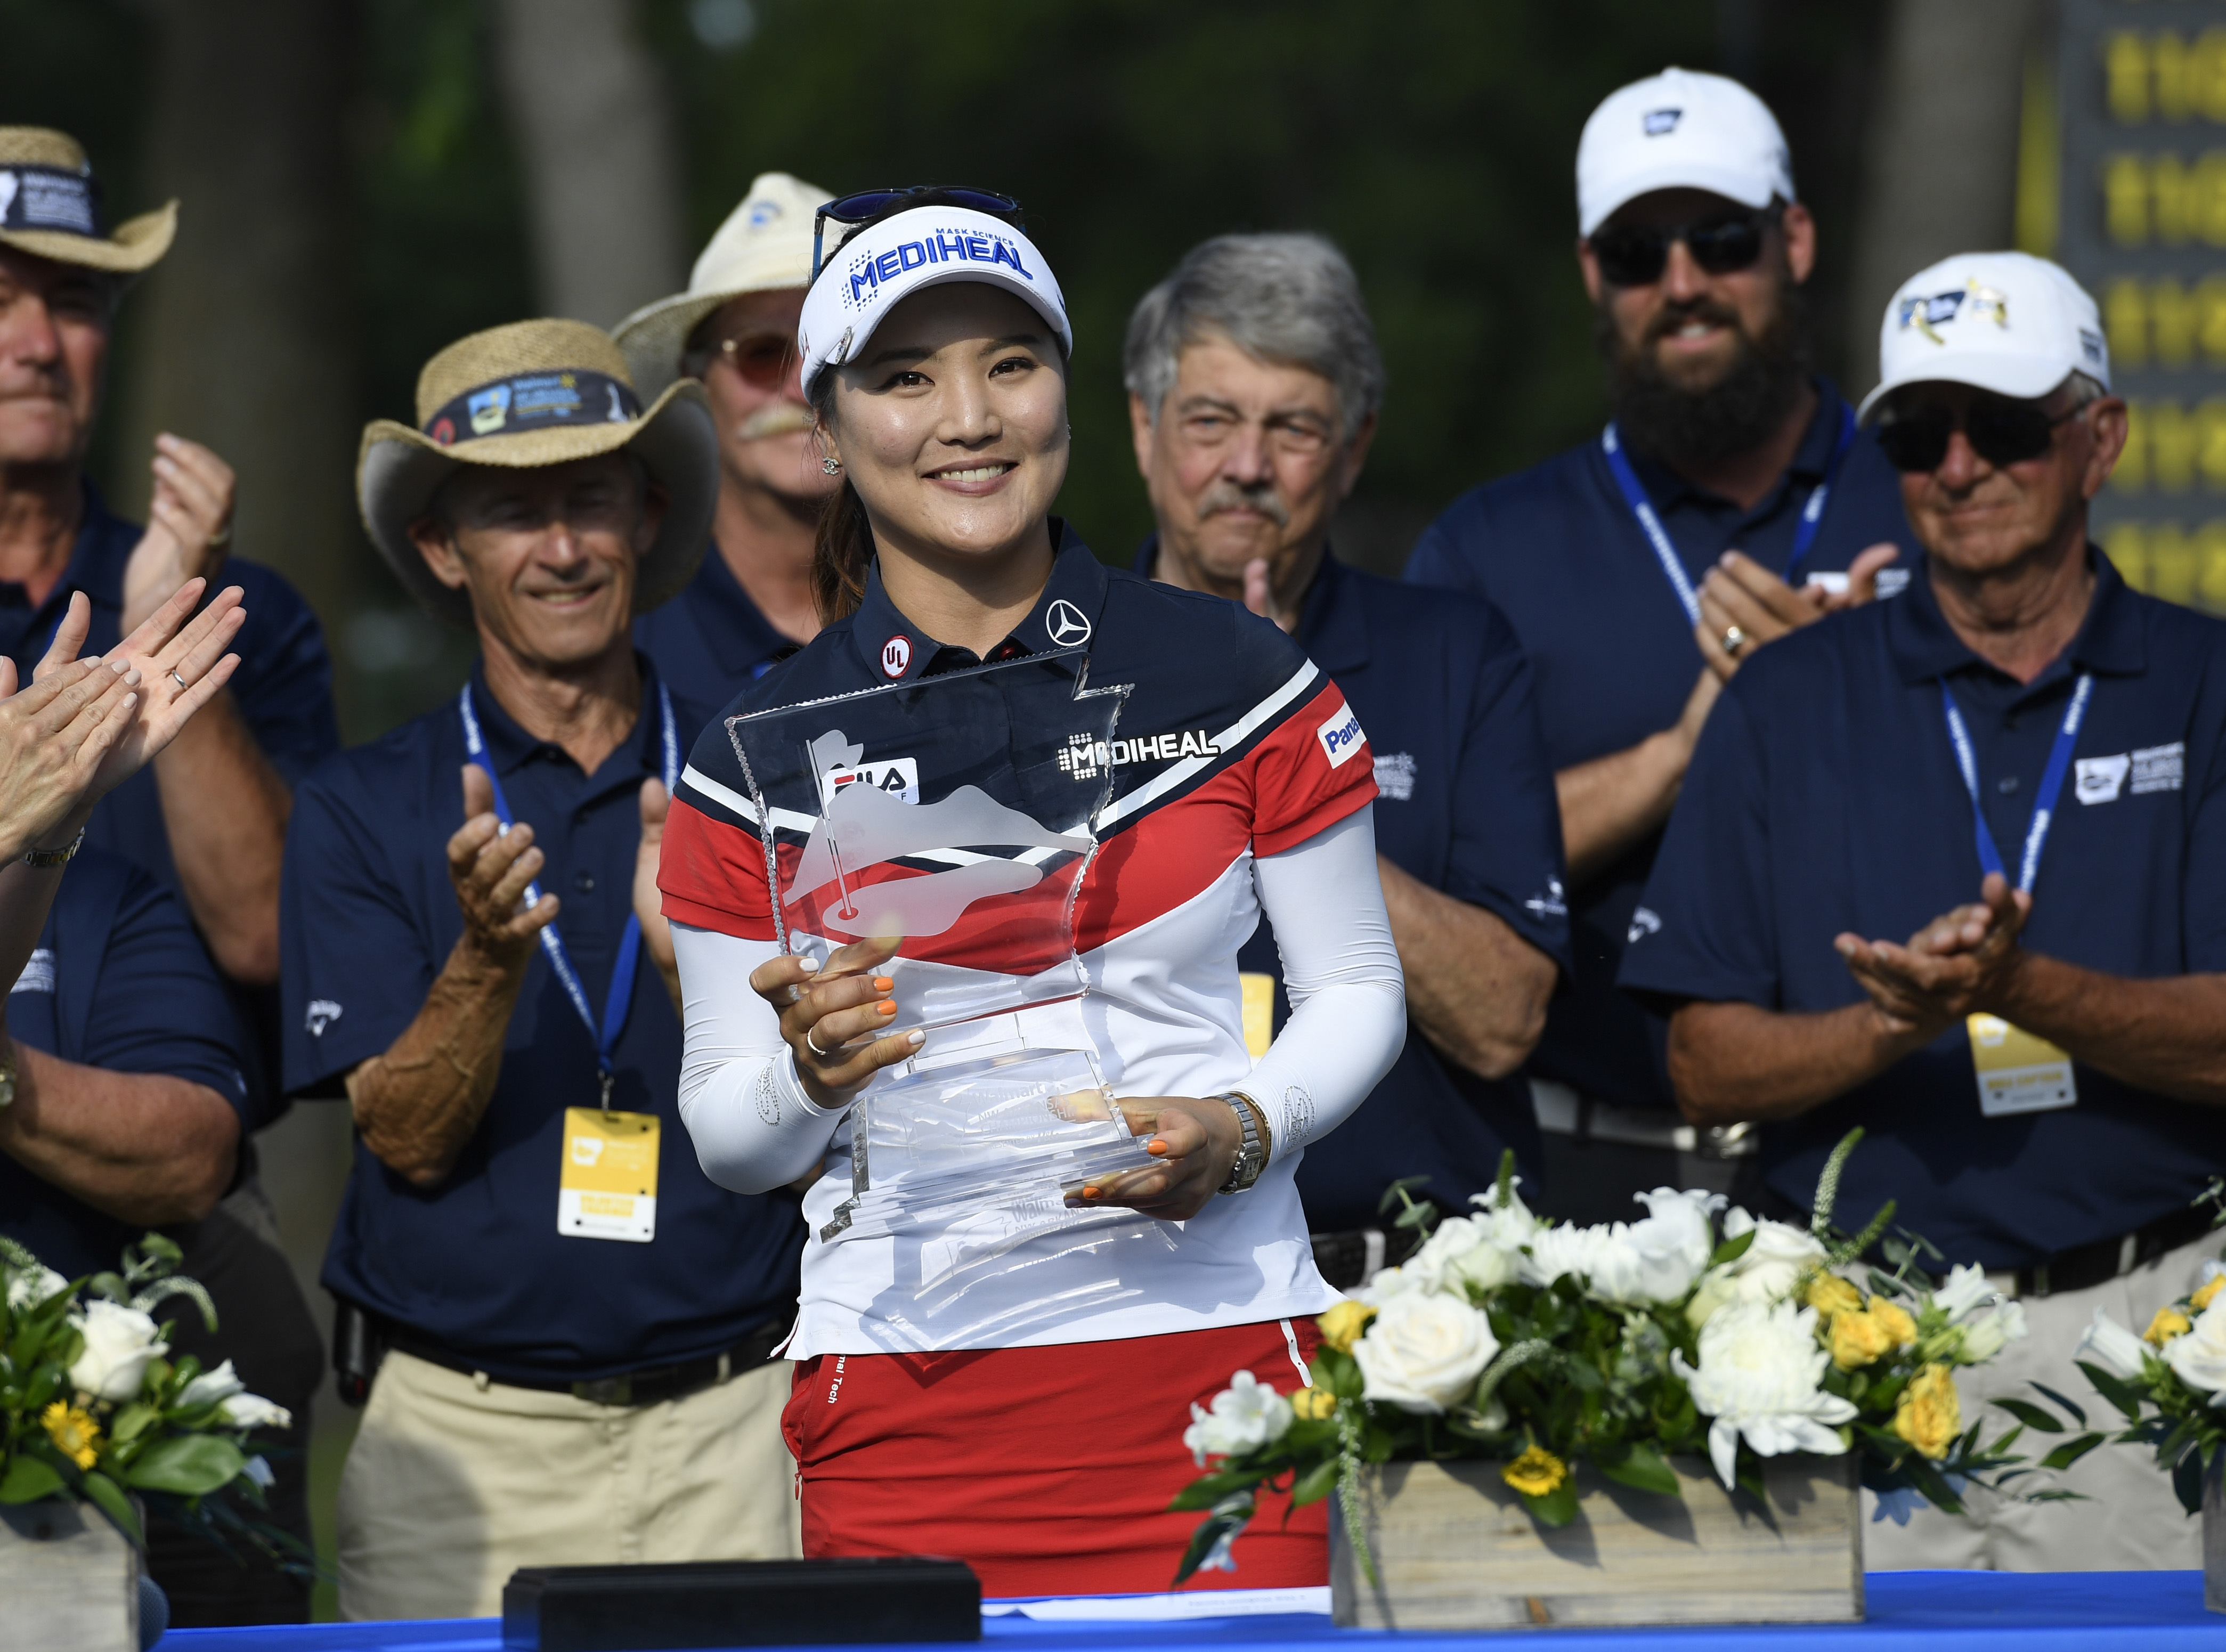 So Yeon Ryu from South Korea holds her trophy after winning the LPGA Wal-Mart NW Arkansas Championship golf tournament at Pinnacle Country Club in Rogers, Ark., Sunday, June 25, 2017. (AP Photo/Michael Woods)